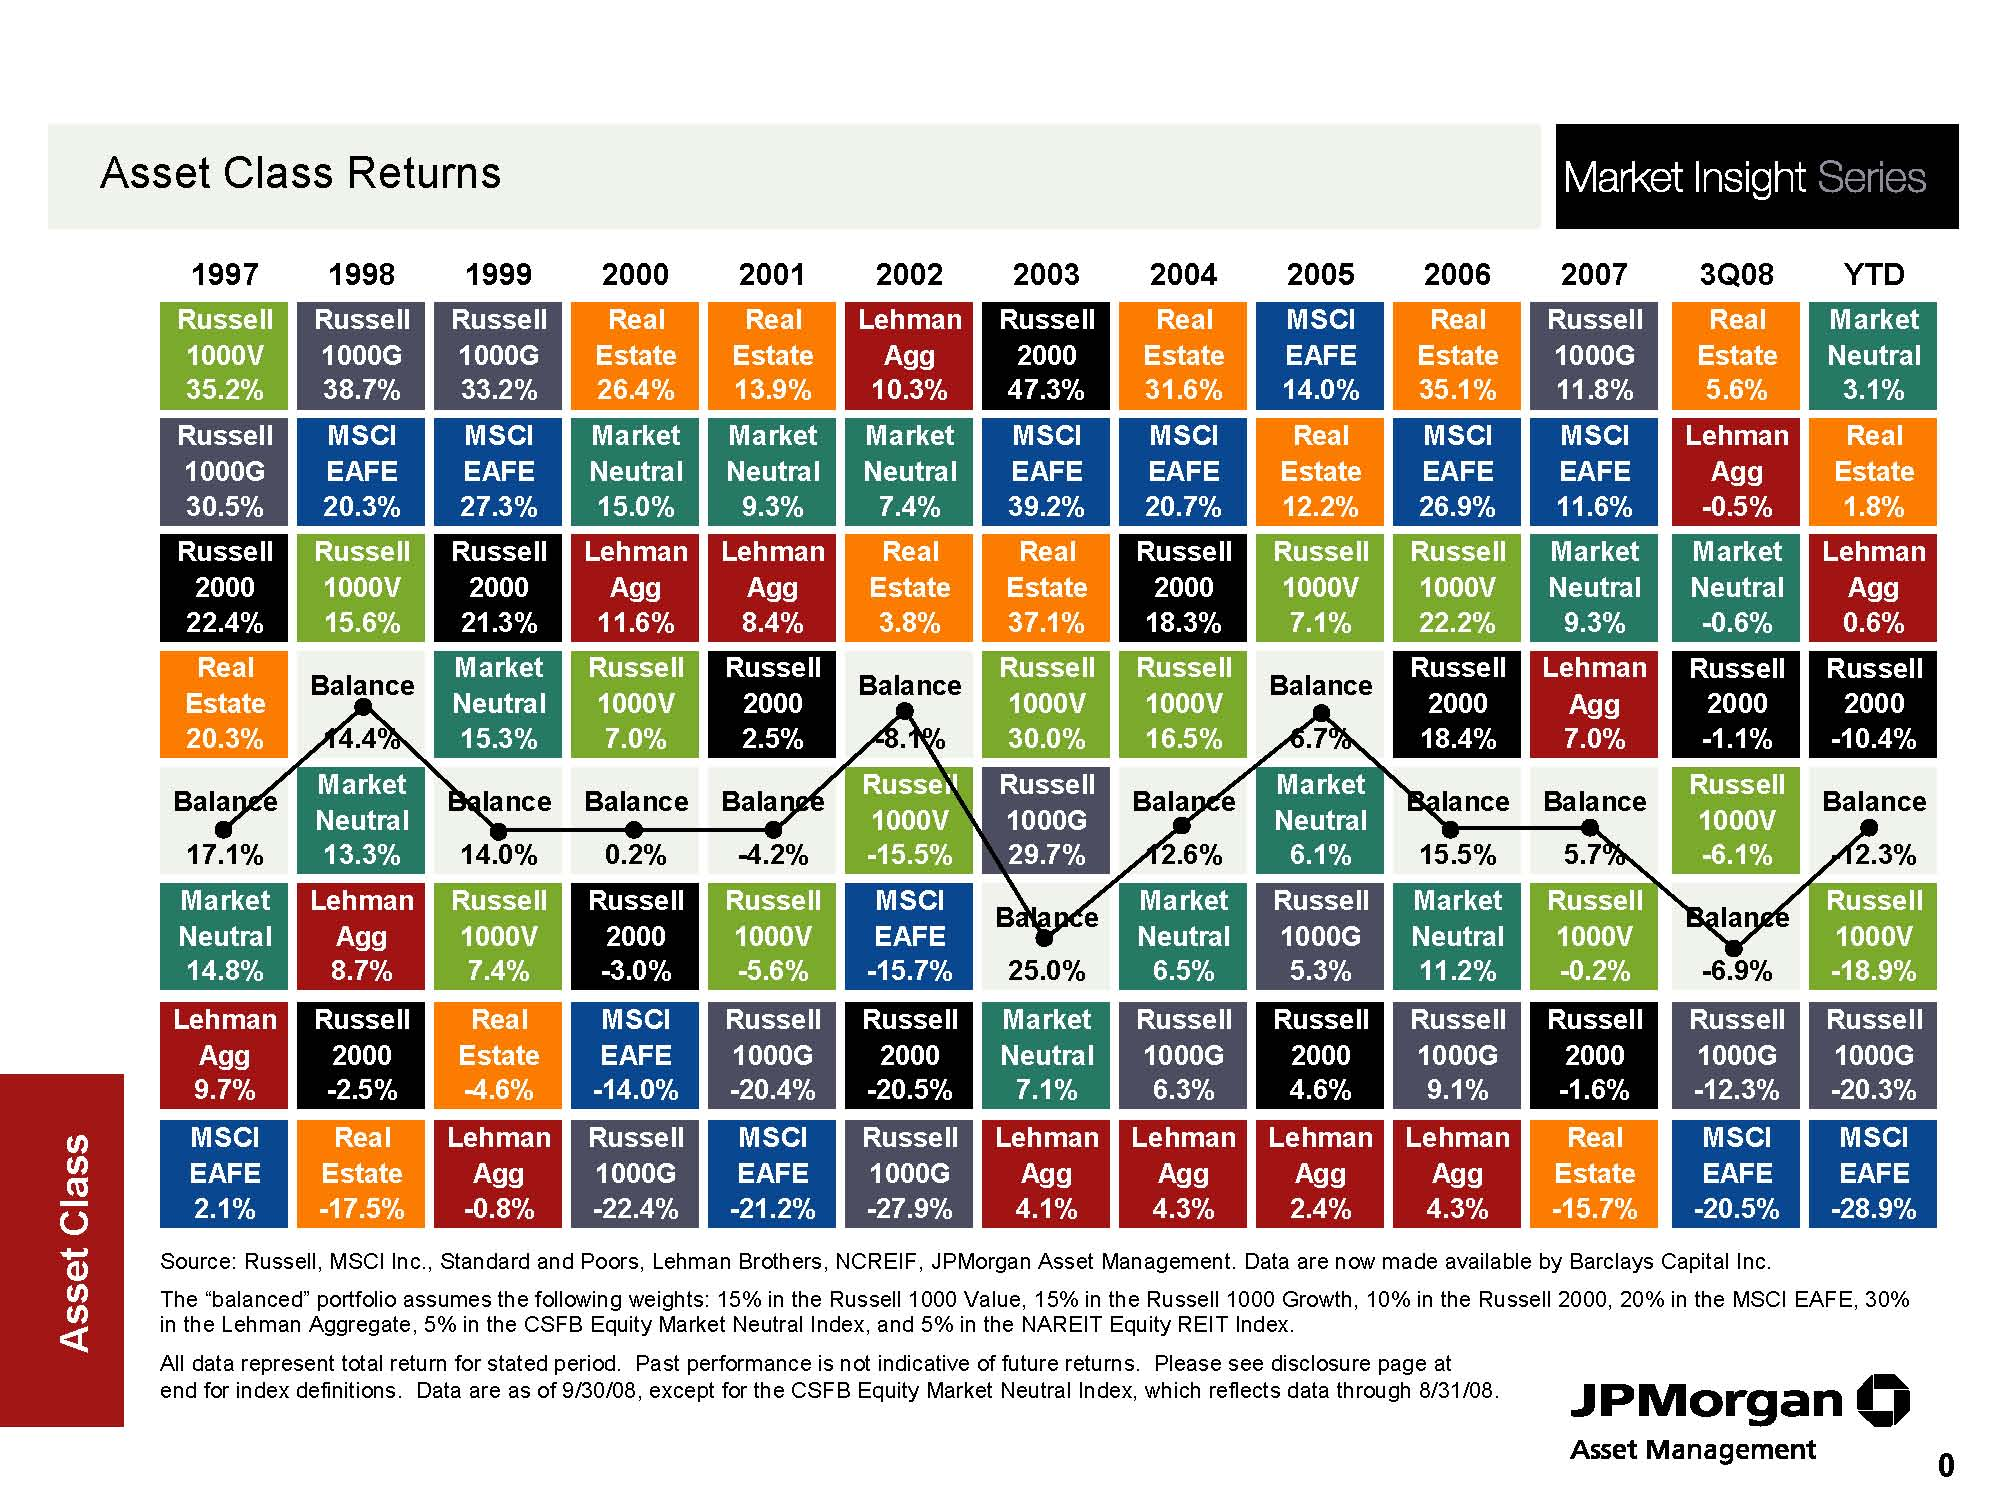 Quilt chart demonstrates that a balanced and diversified portfolio will produce middle ranking returns.